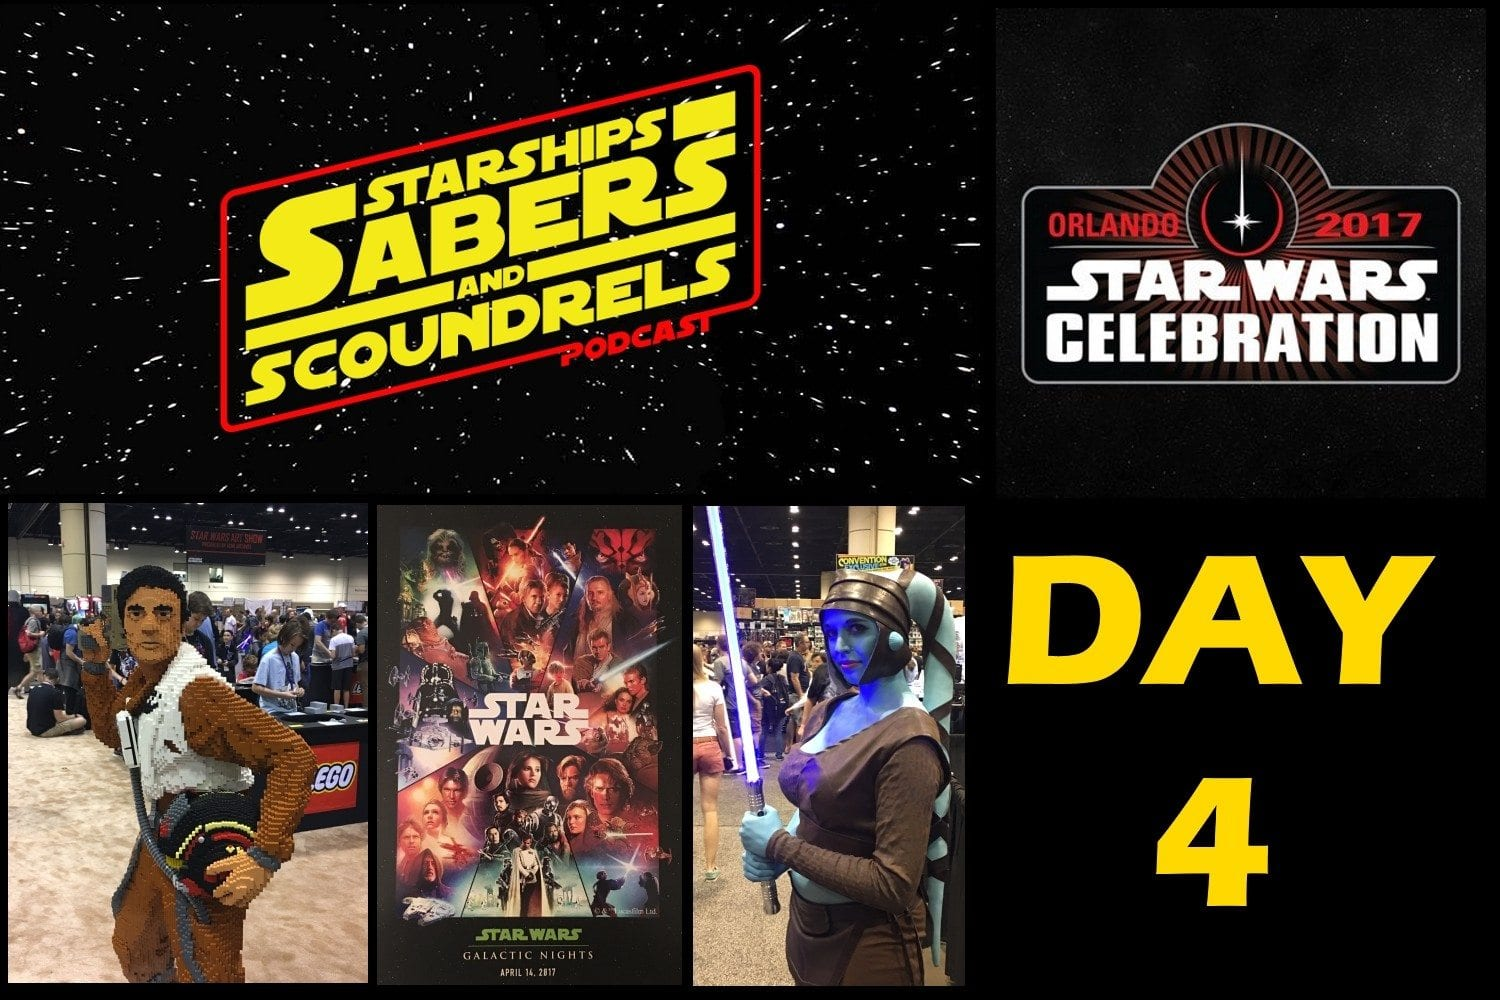 Starships, Sabers, and Scoundrels - Celebration Report - Day 4 - A Good Kind of Tired